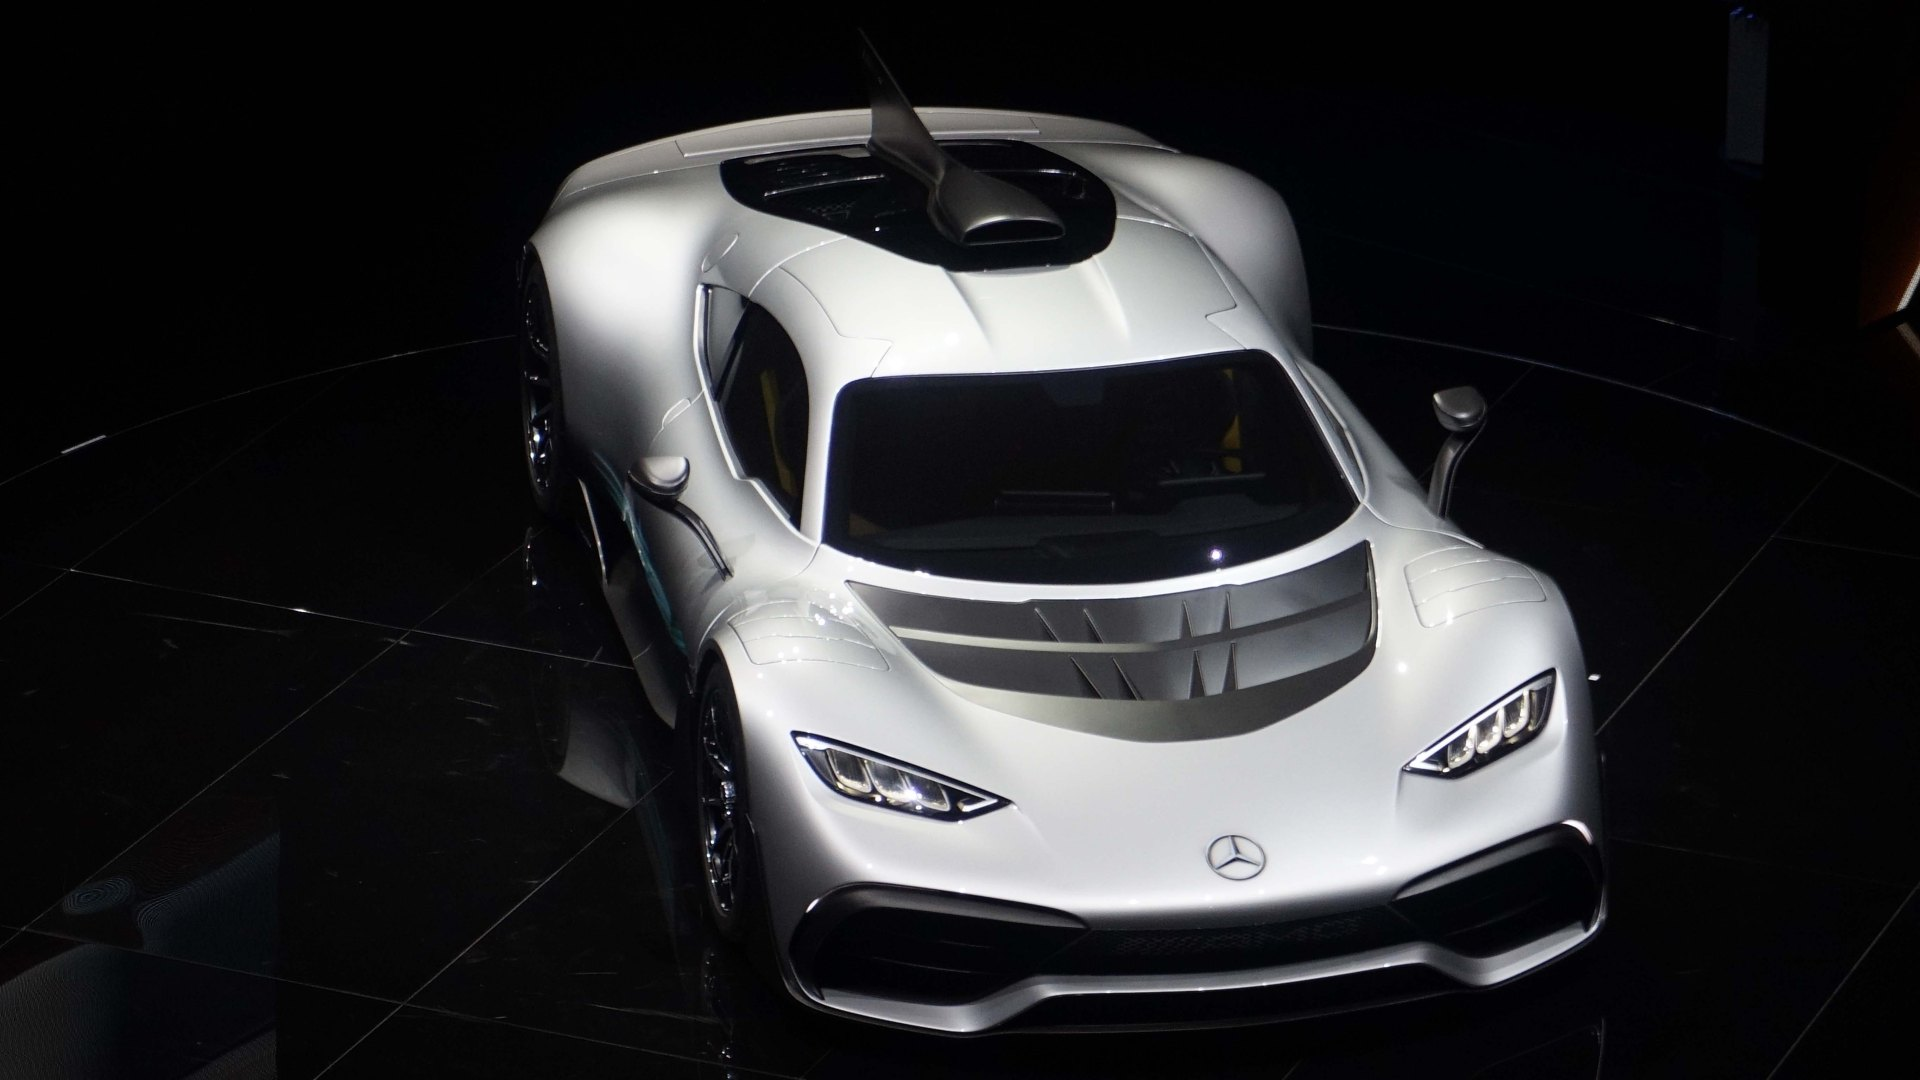 mercedes-amg-project-one-hypercar-iaa-2017-04